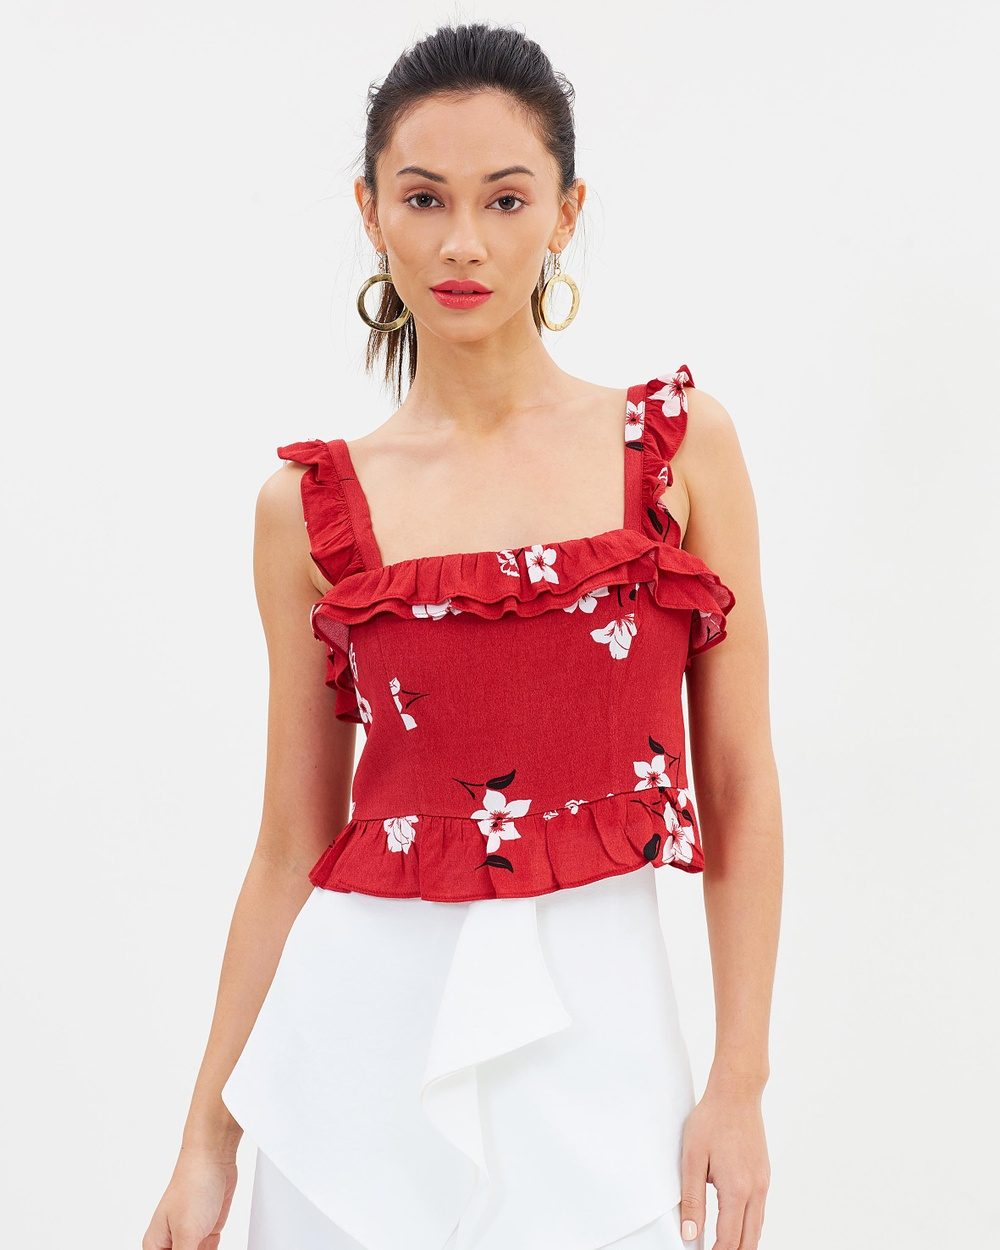 Bardot Harper Frill Top Cropped tops Red Floral Harper Frill Top